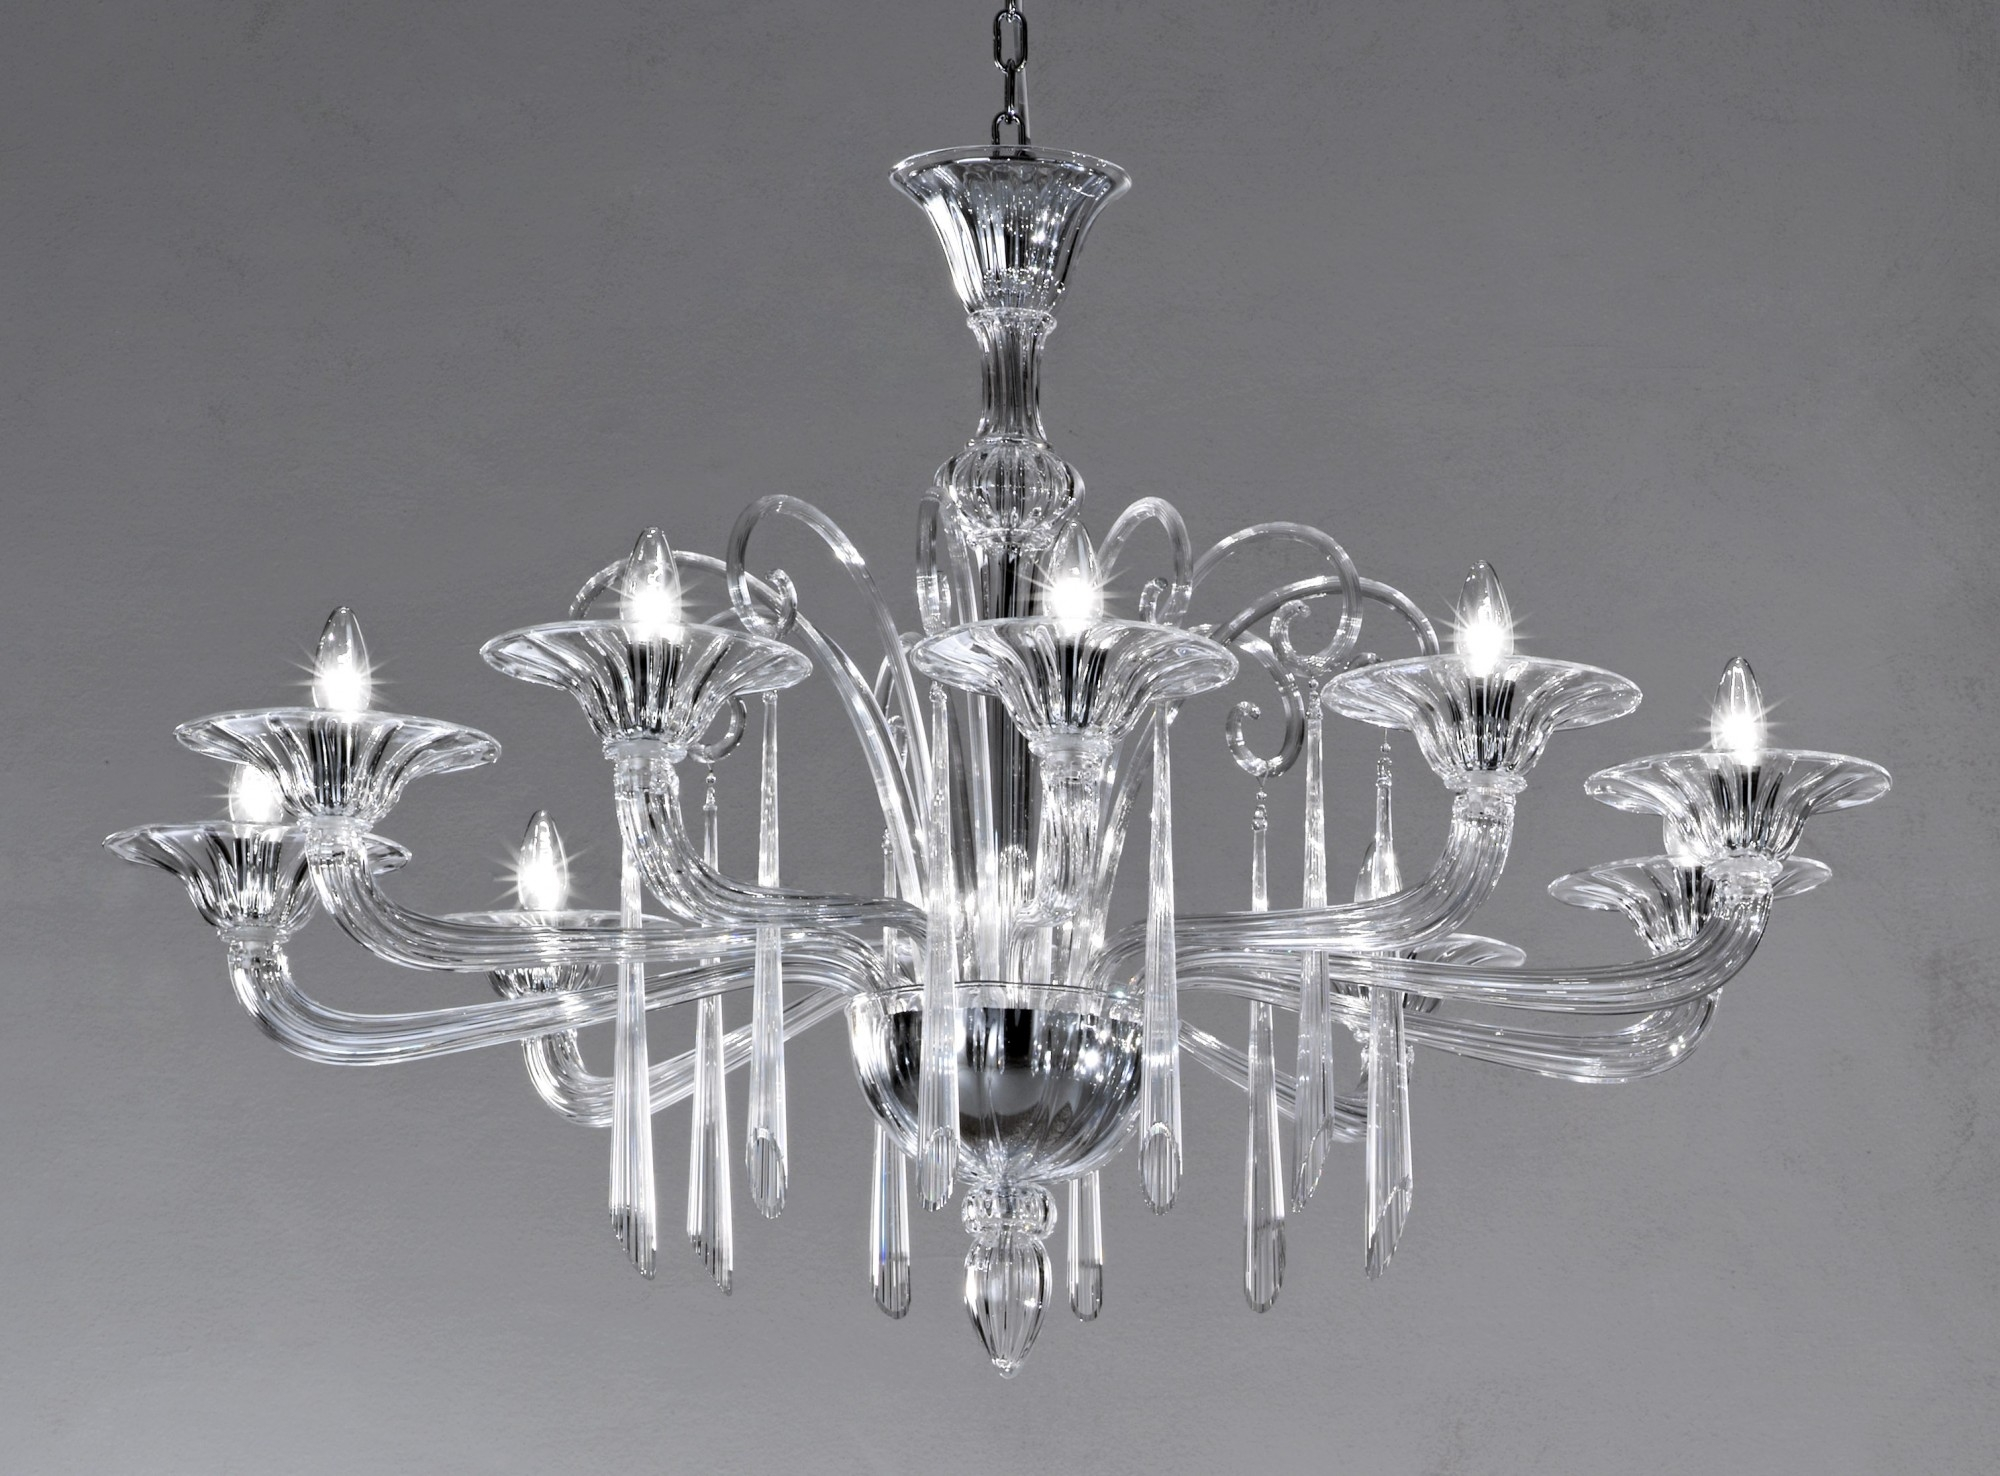 Crystal Clear Modern Murano Chandelier Dml6012k10 Murano With Regard To Murano Chandelier (#3 of 12)